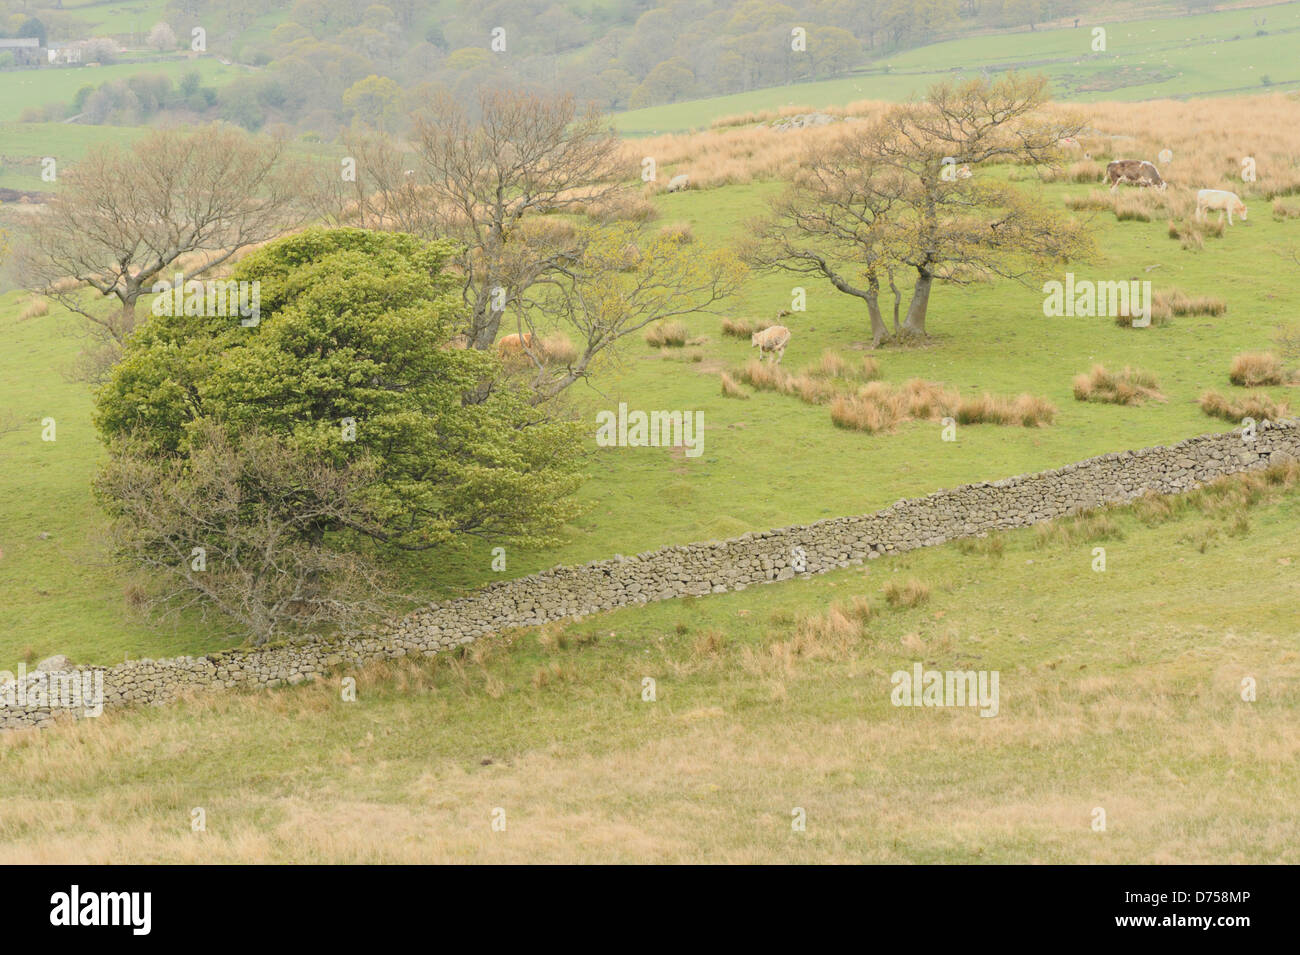 Damp day in the Lake District: stone walls, trees, sheep - Stock Image